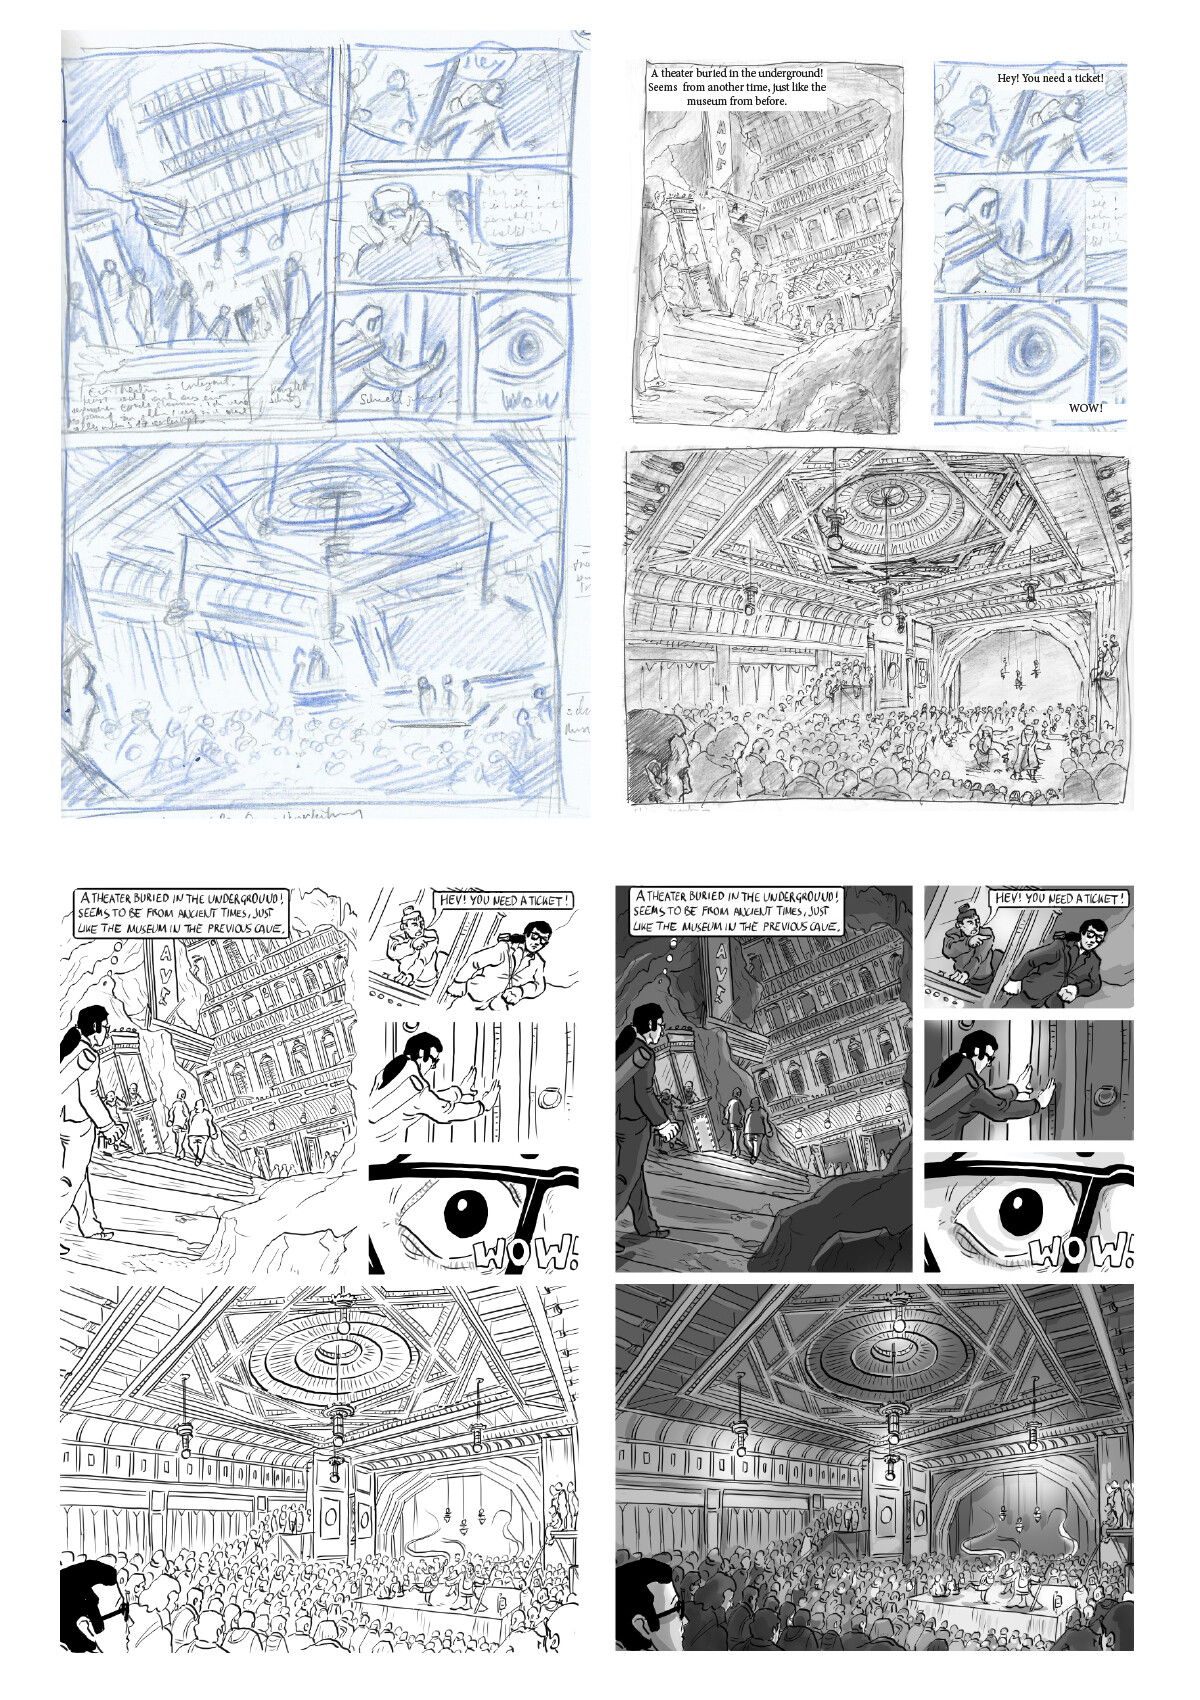 Process from rough pencil storyboard to inked and bw coloured page